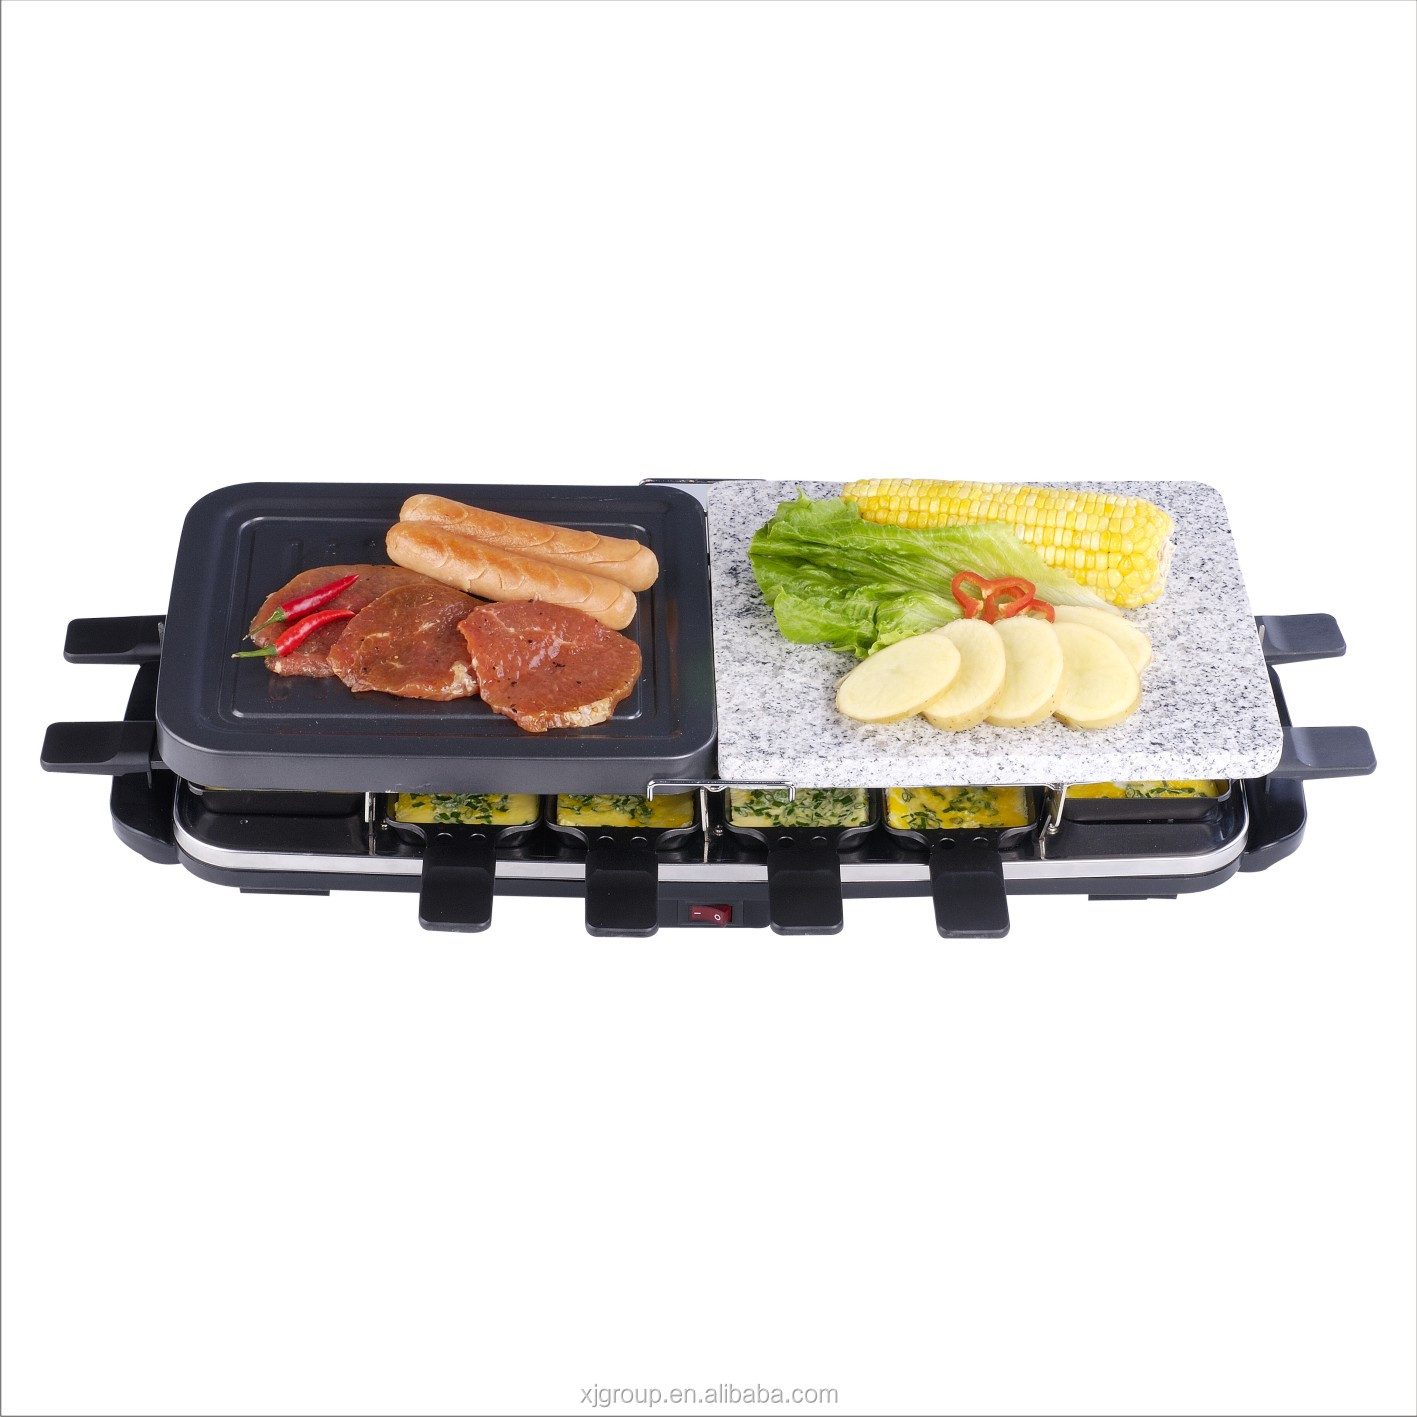 Smokeless Indoor Electric Grill, Smokeless Indoor Electric Grill ...